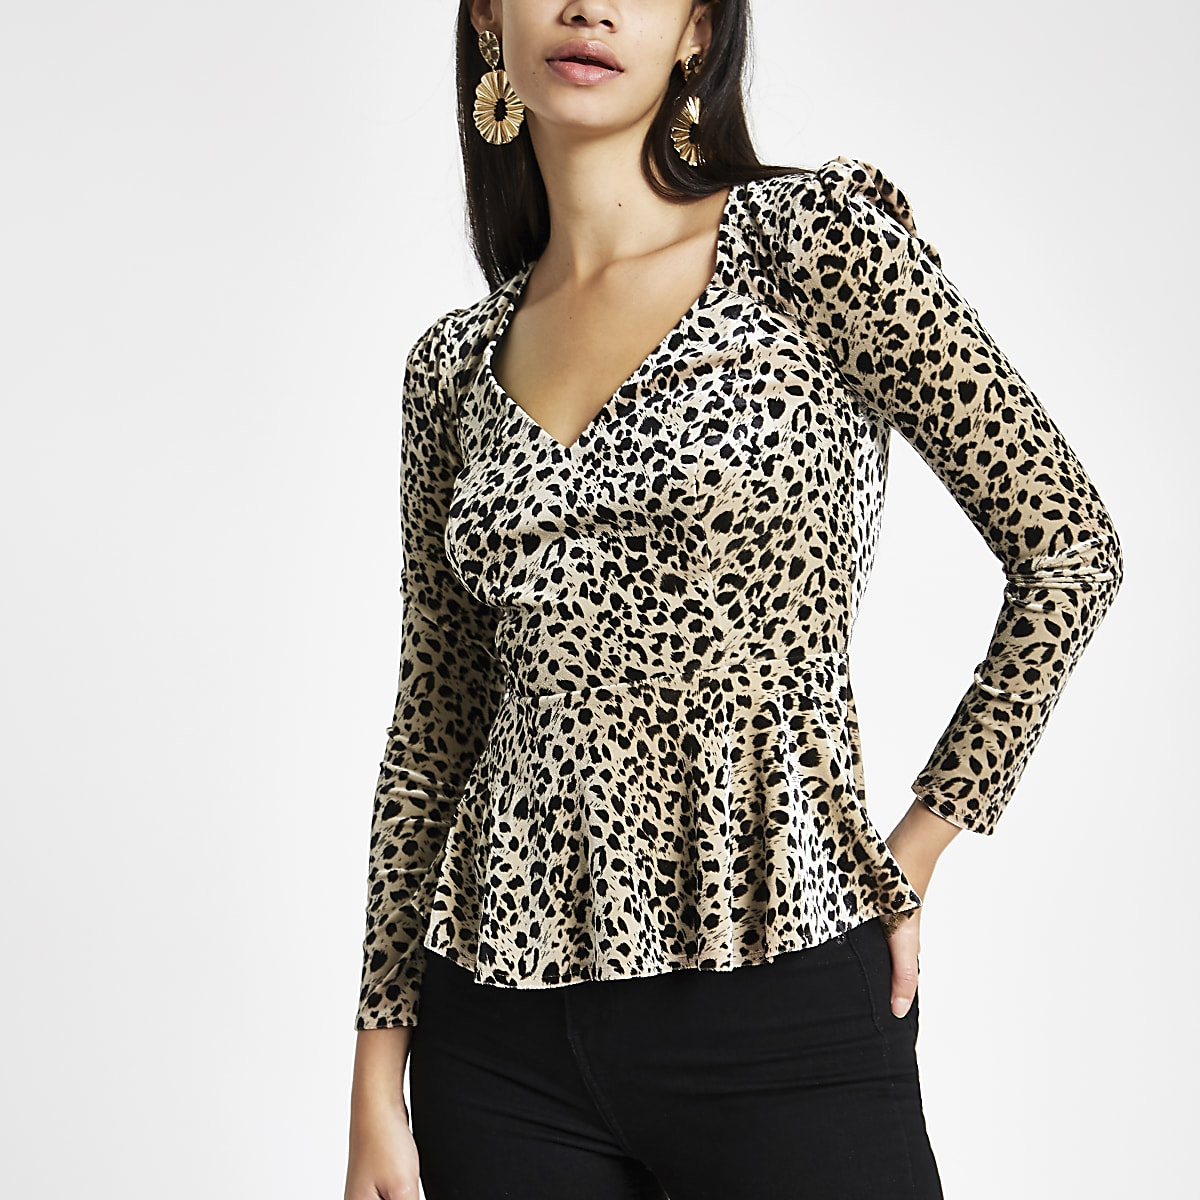 a86d00b32d2f3 Cream leopard print velvet long sleeve top - Blouses - Tops - women